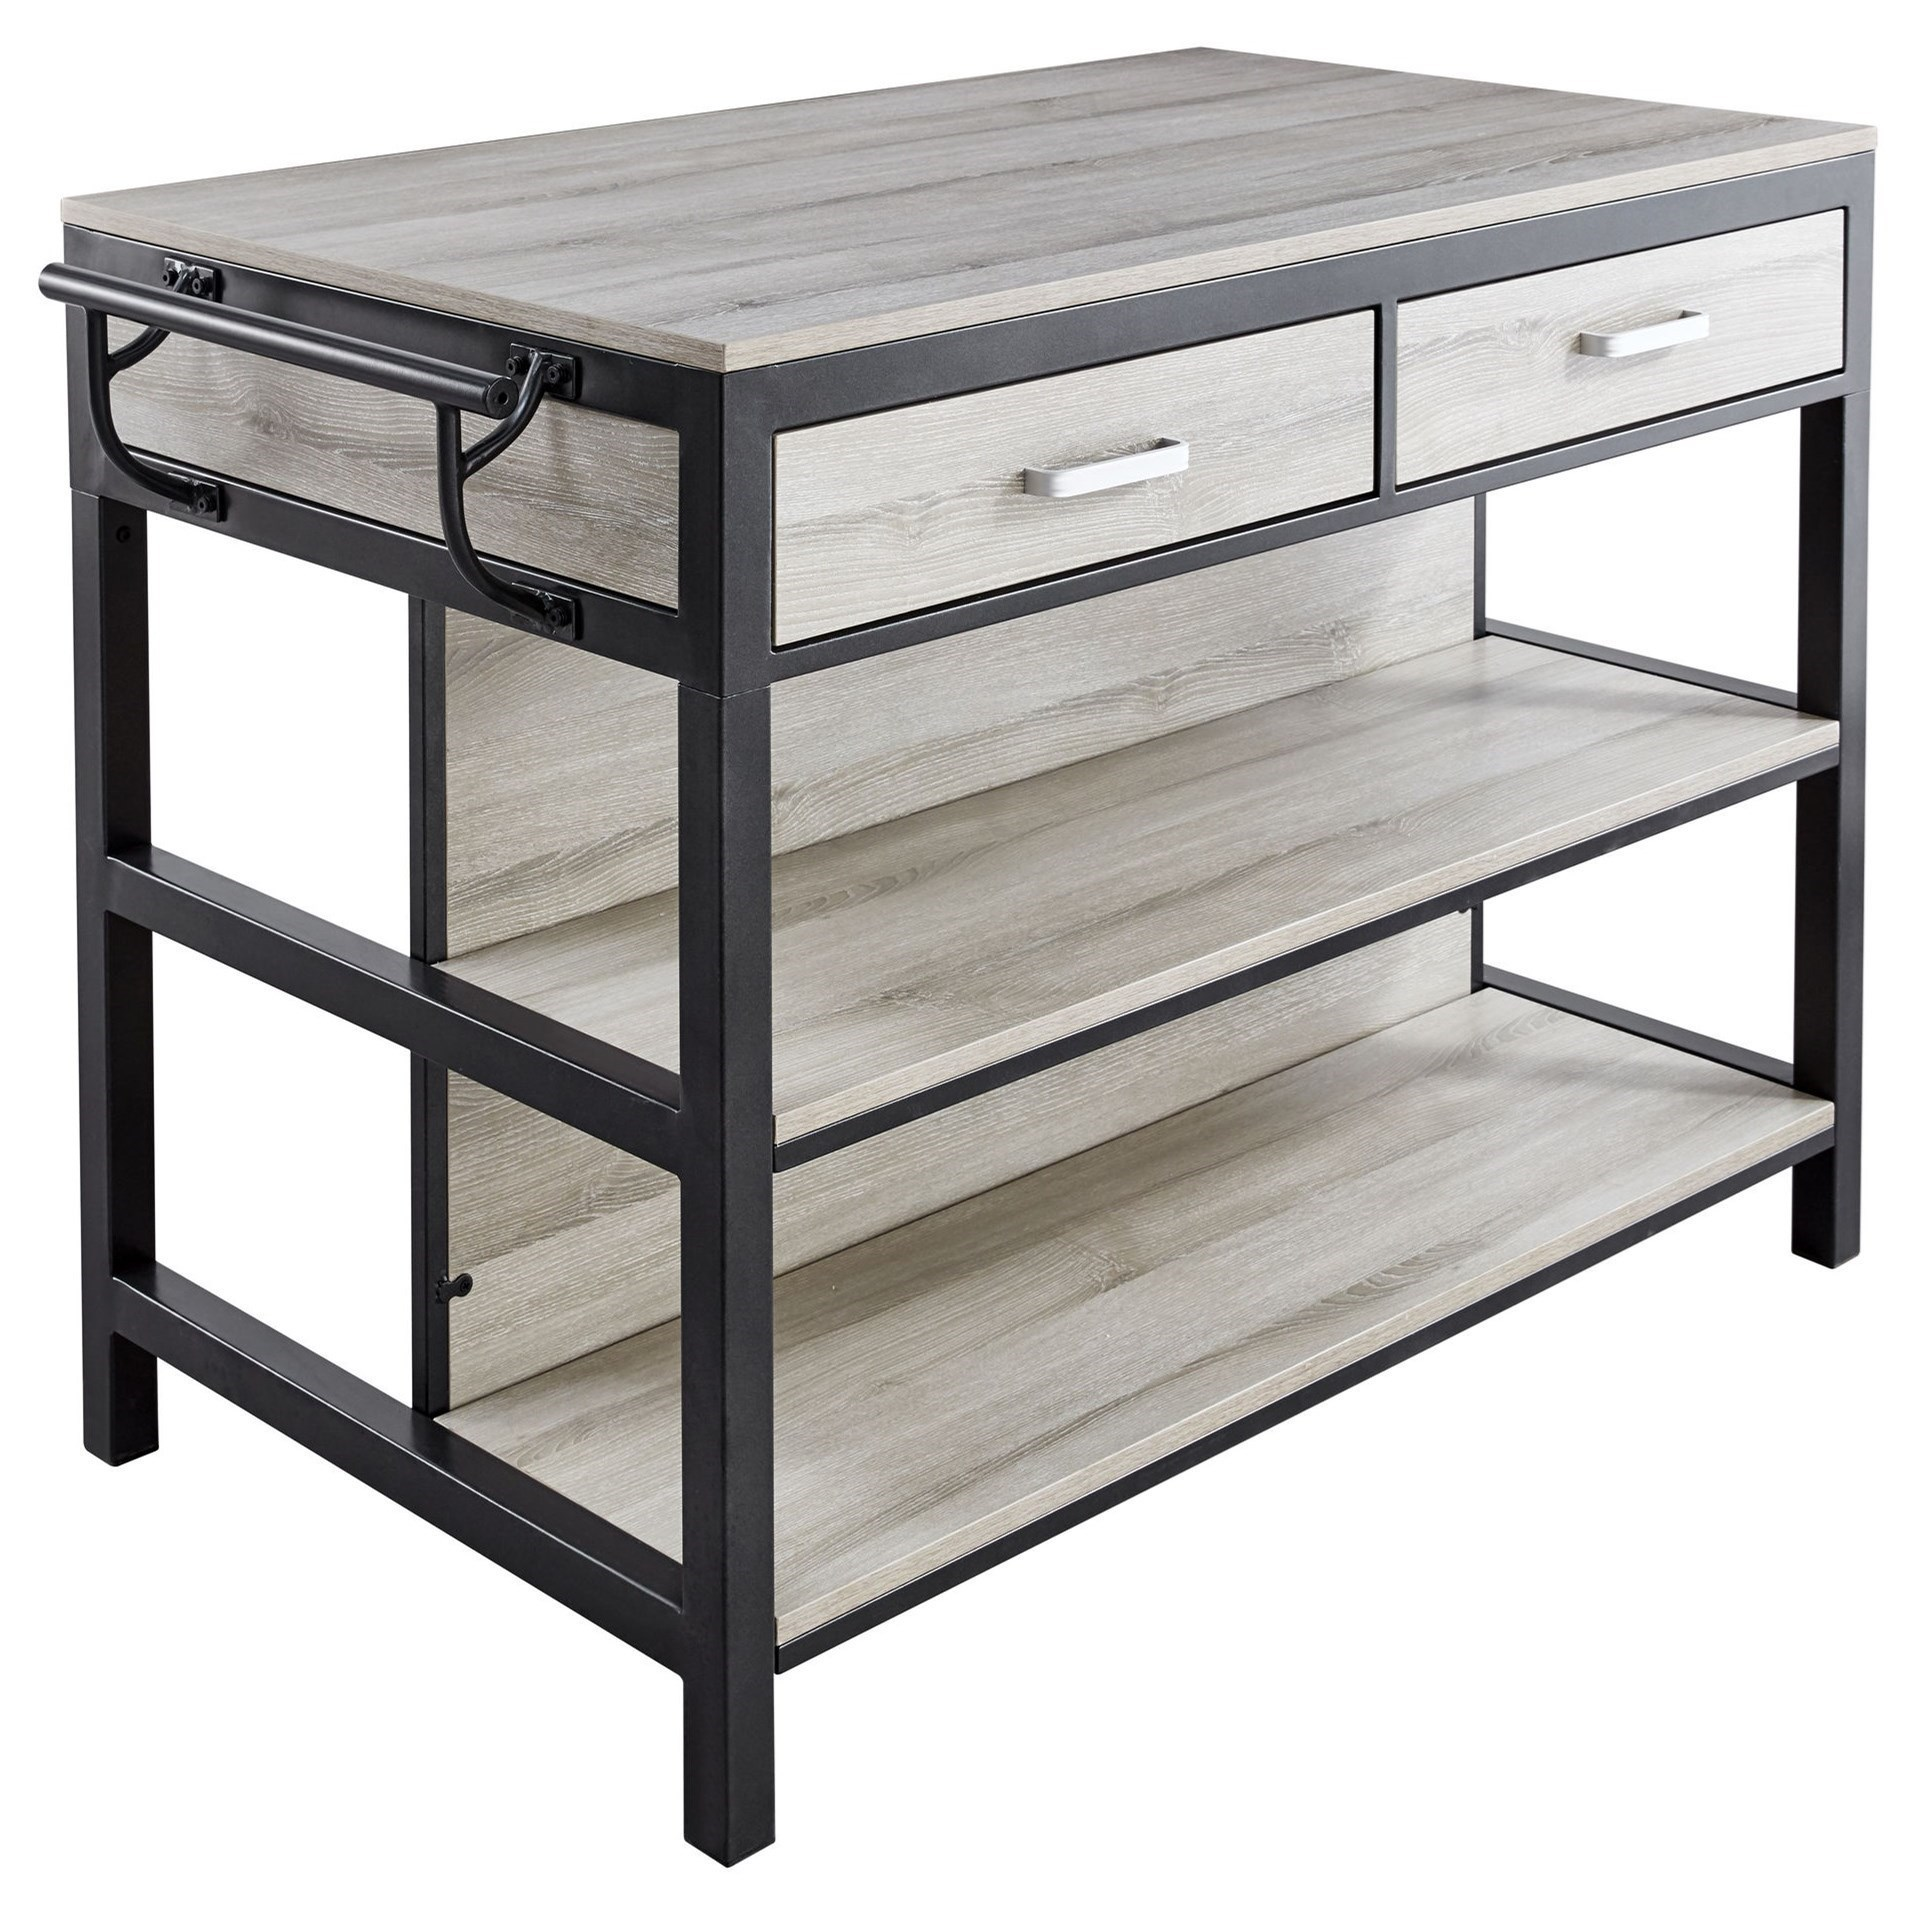 Contemporary Counter Height Kitchen Table with 2 Drawers, 2 Shelves, and Towel Racks